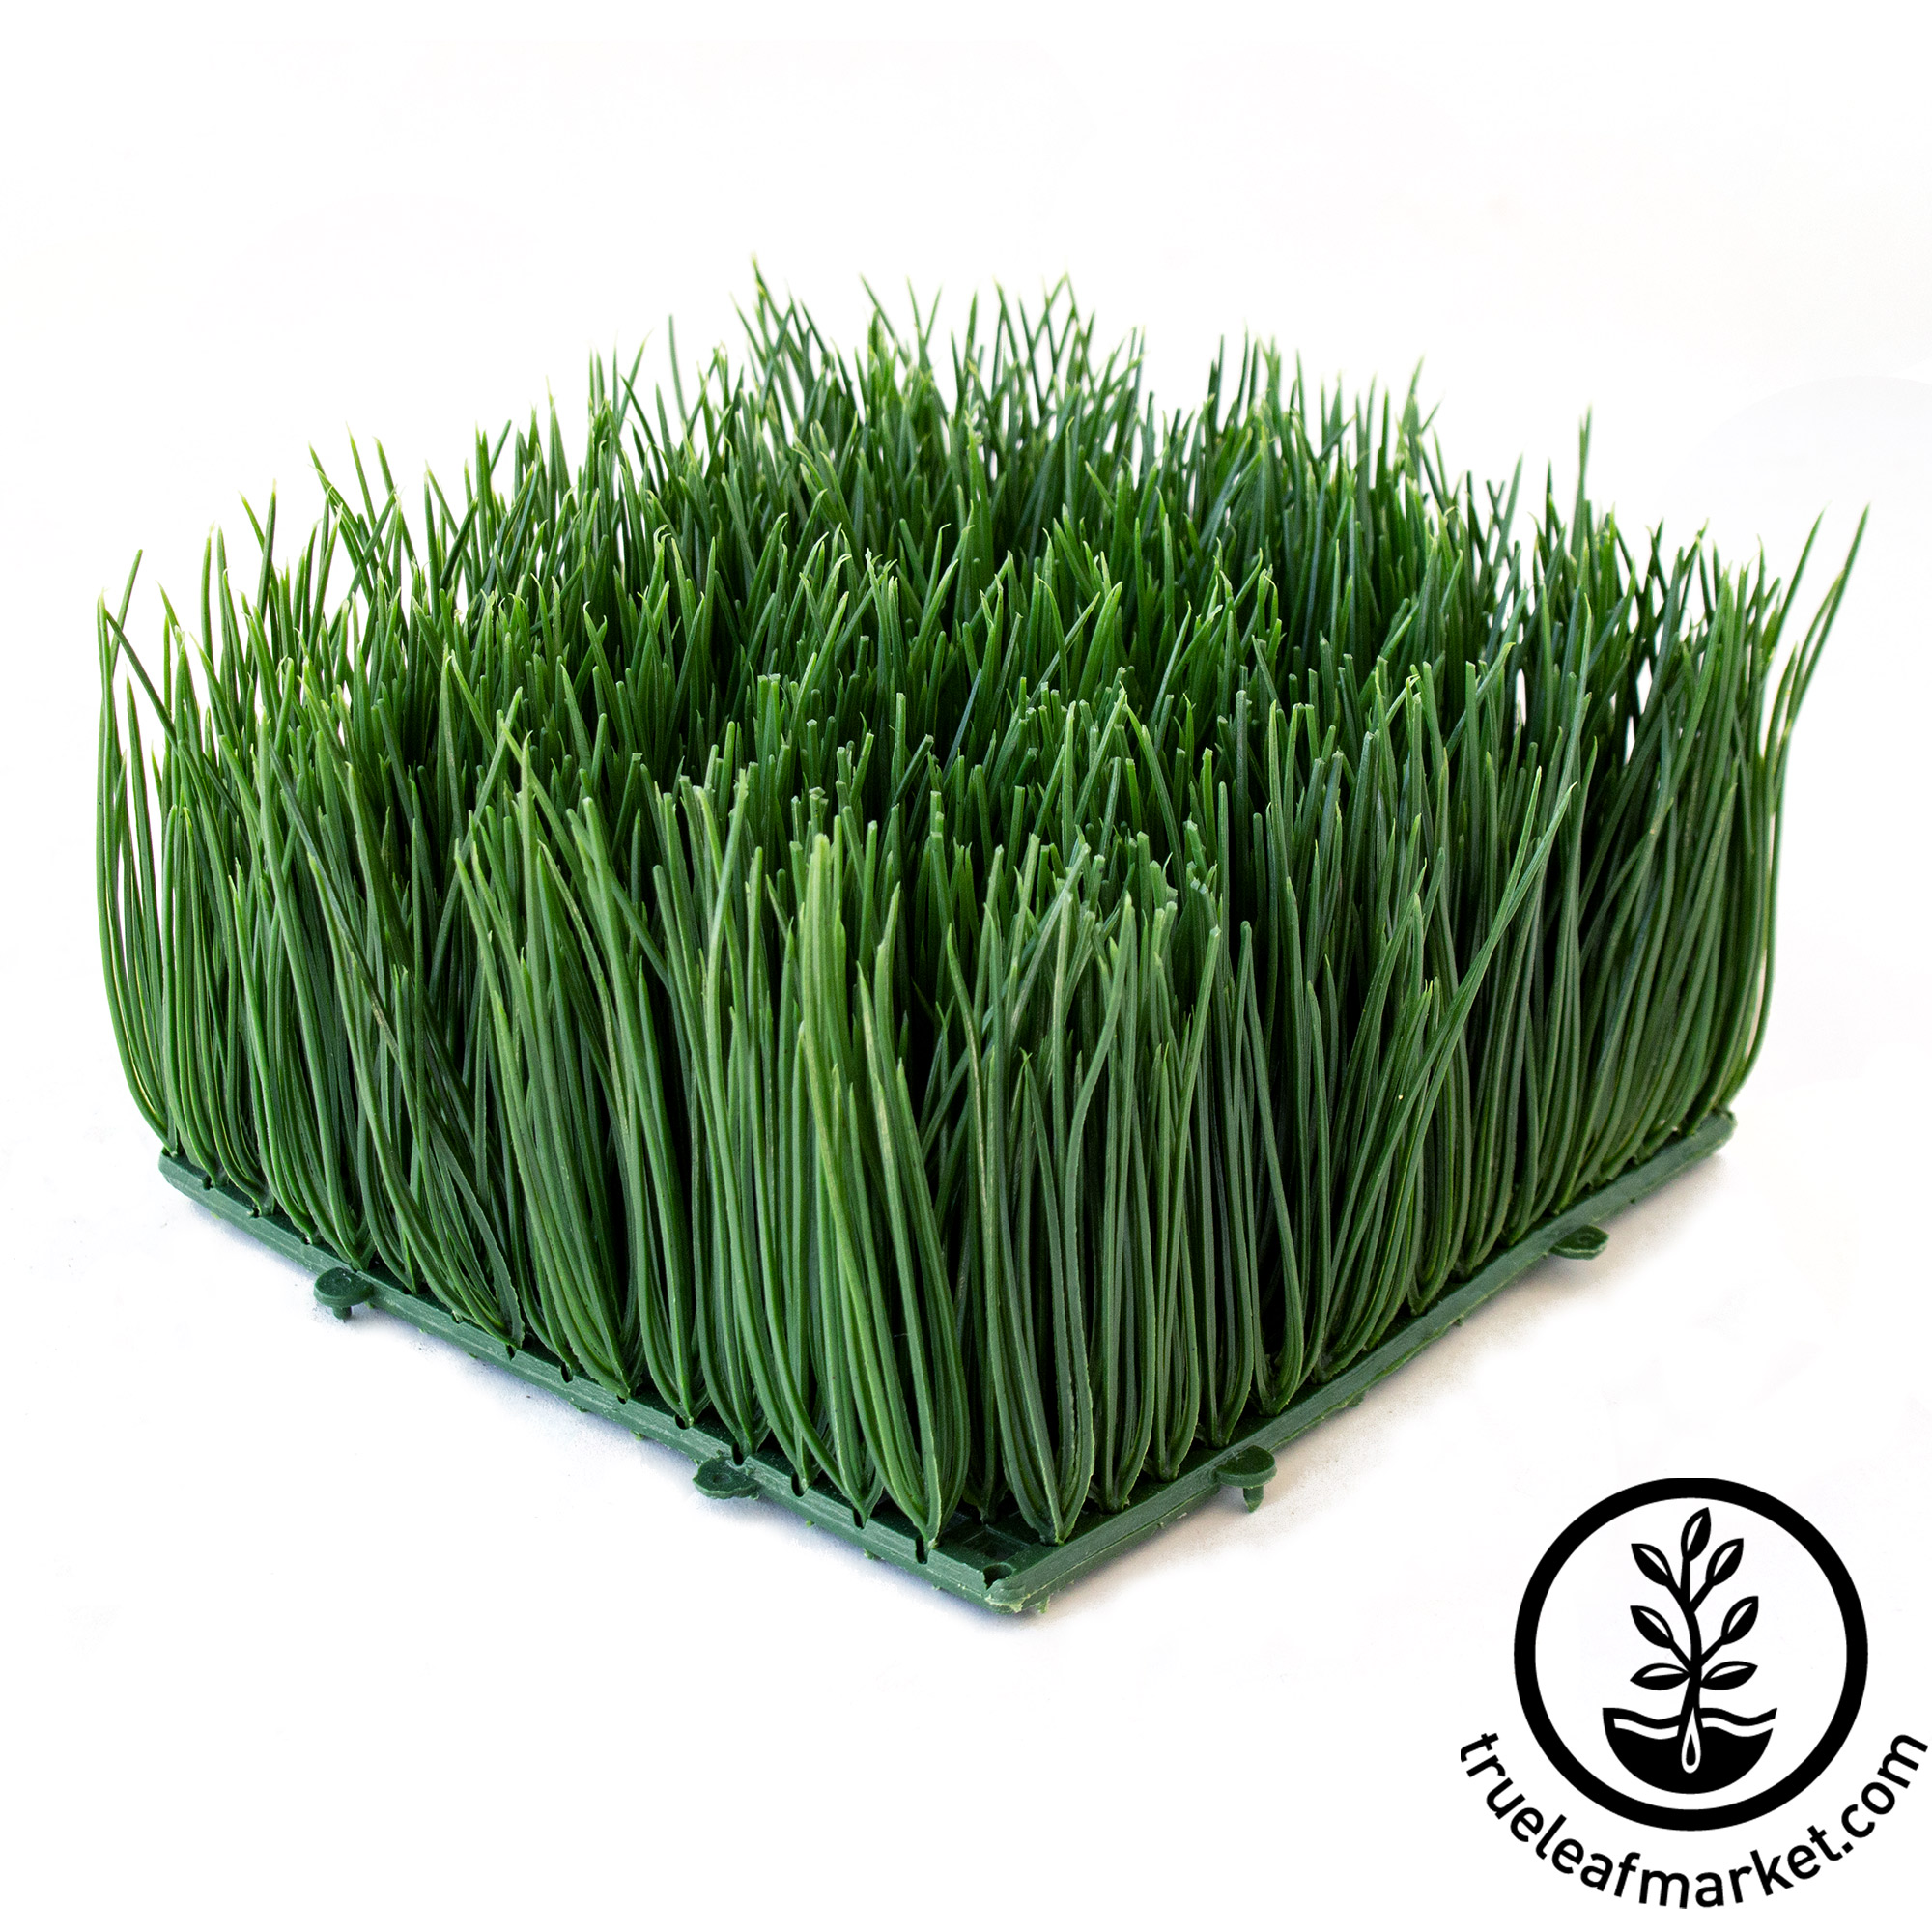 Underside of Artificial Wheatgrass 6 inch by 6 inch by 4 inches high